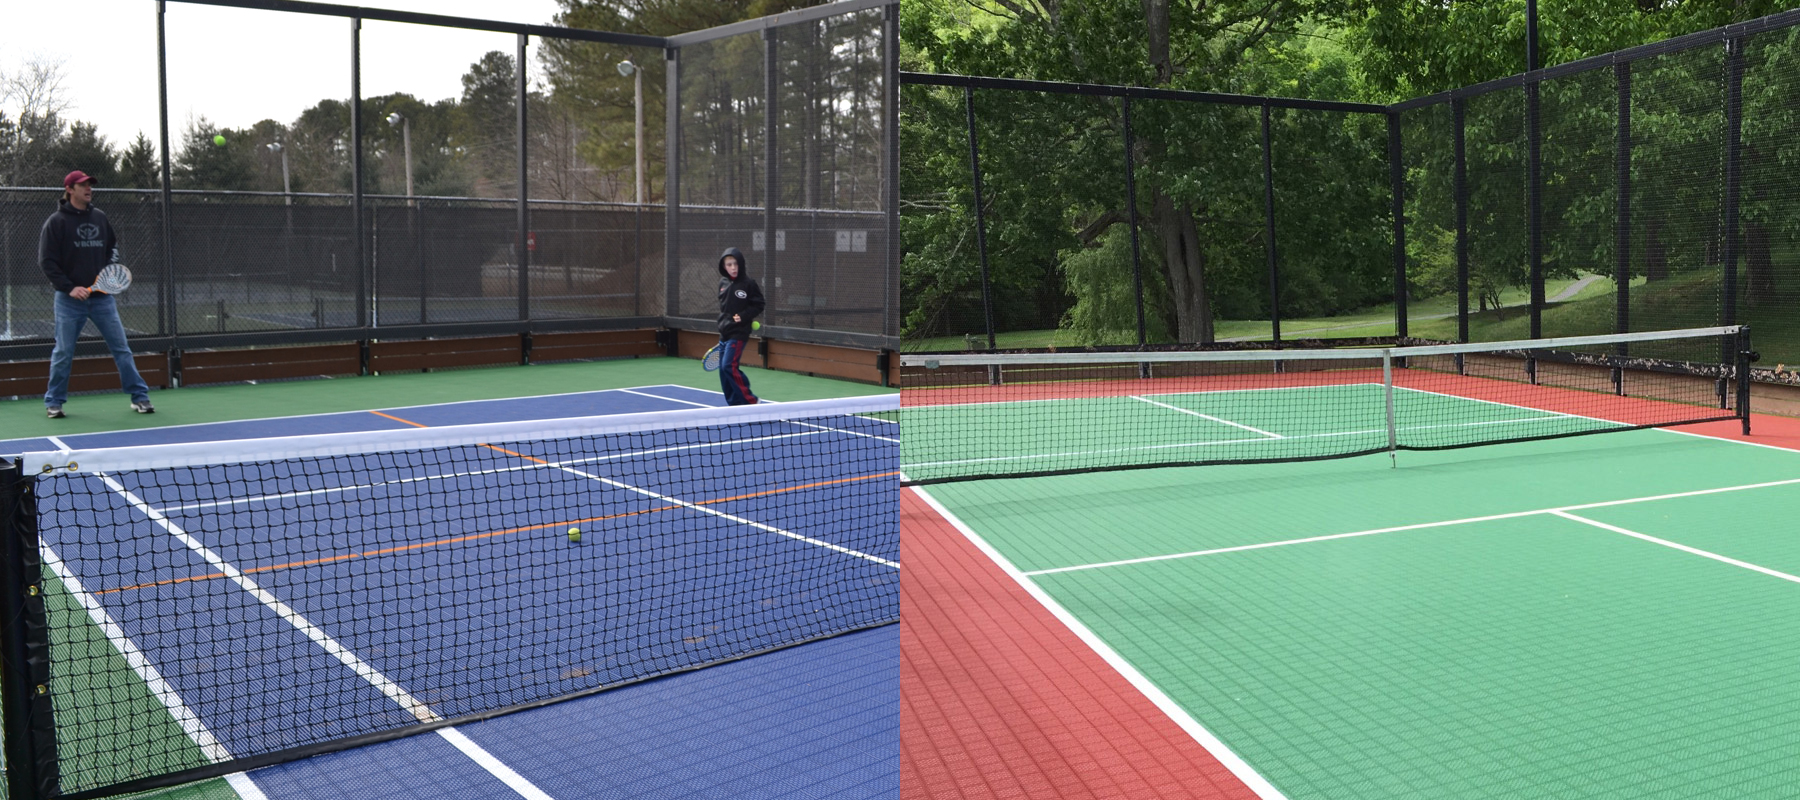 Modular Flooring For Outdoor And Indoor Courts Mateflex - Mate flex flooring